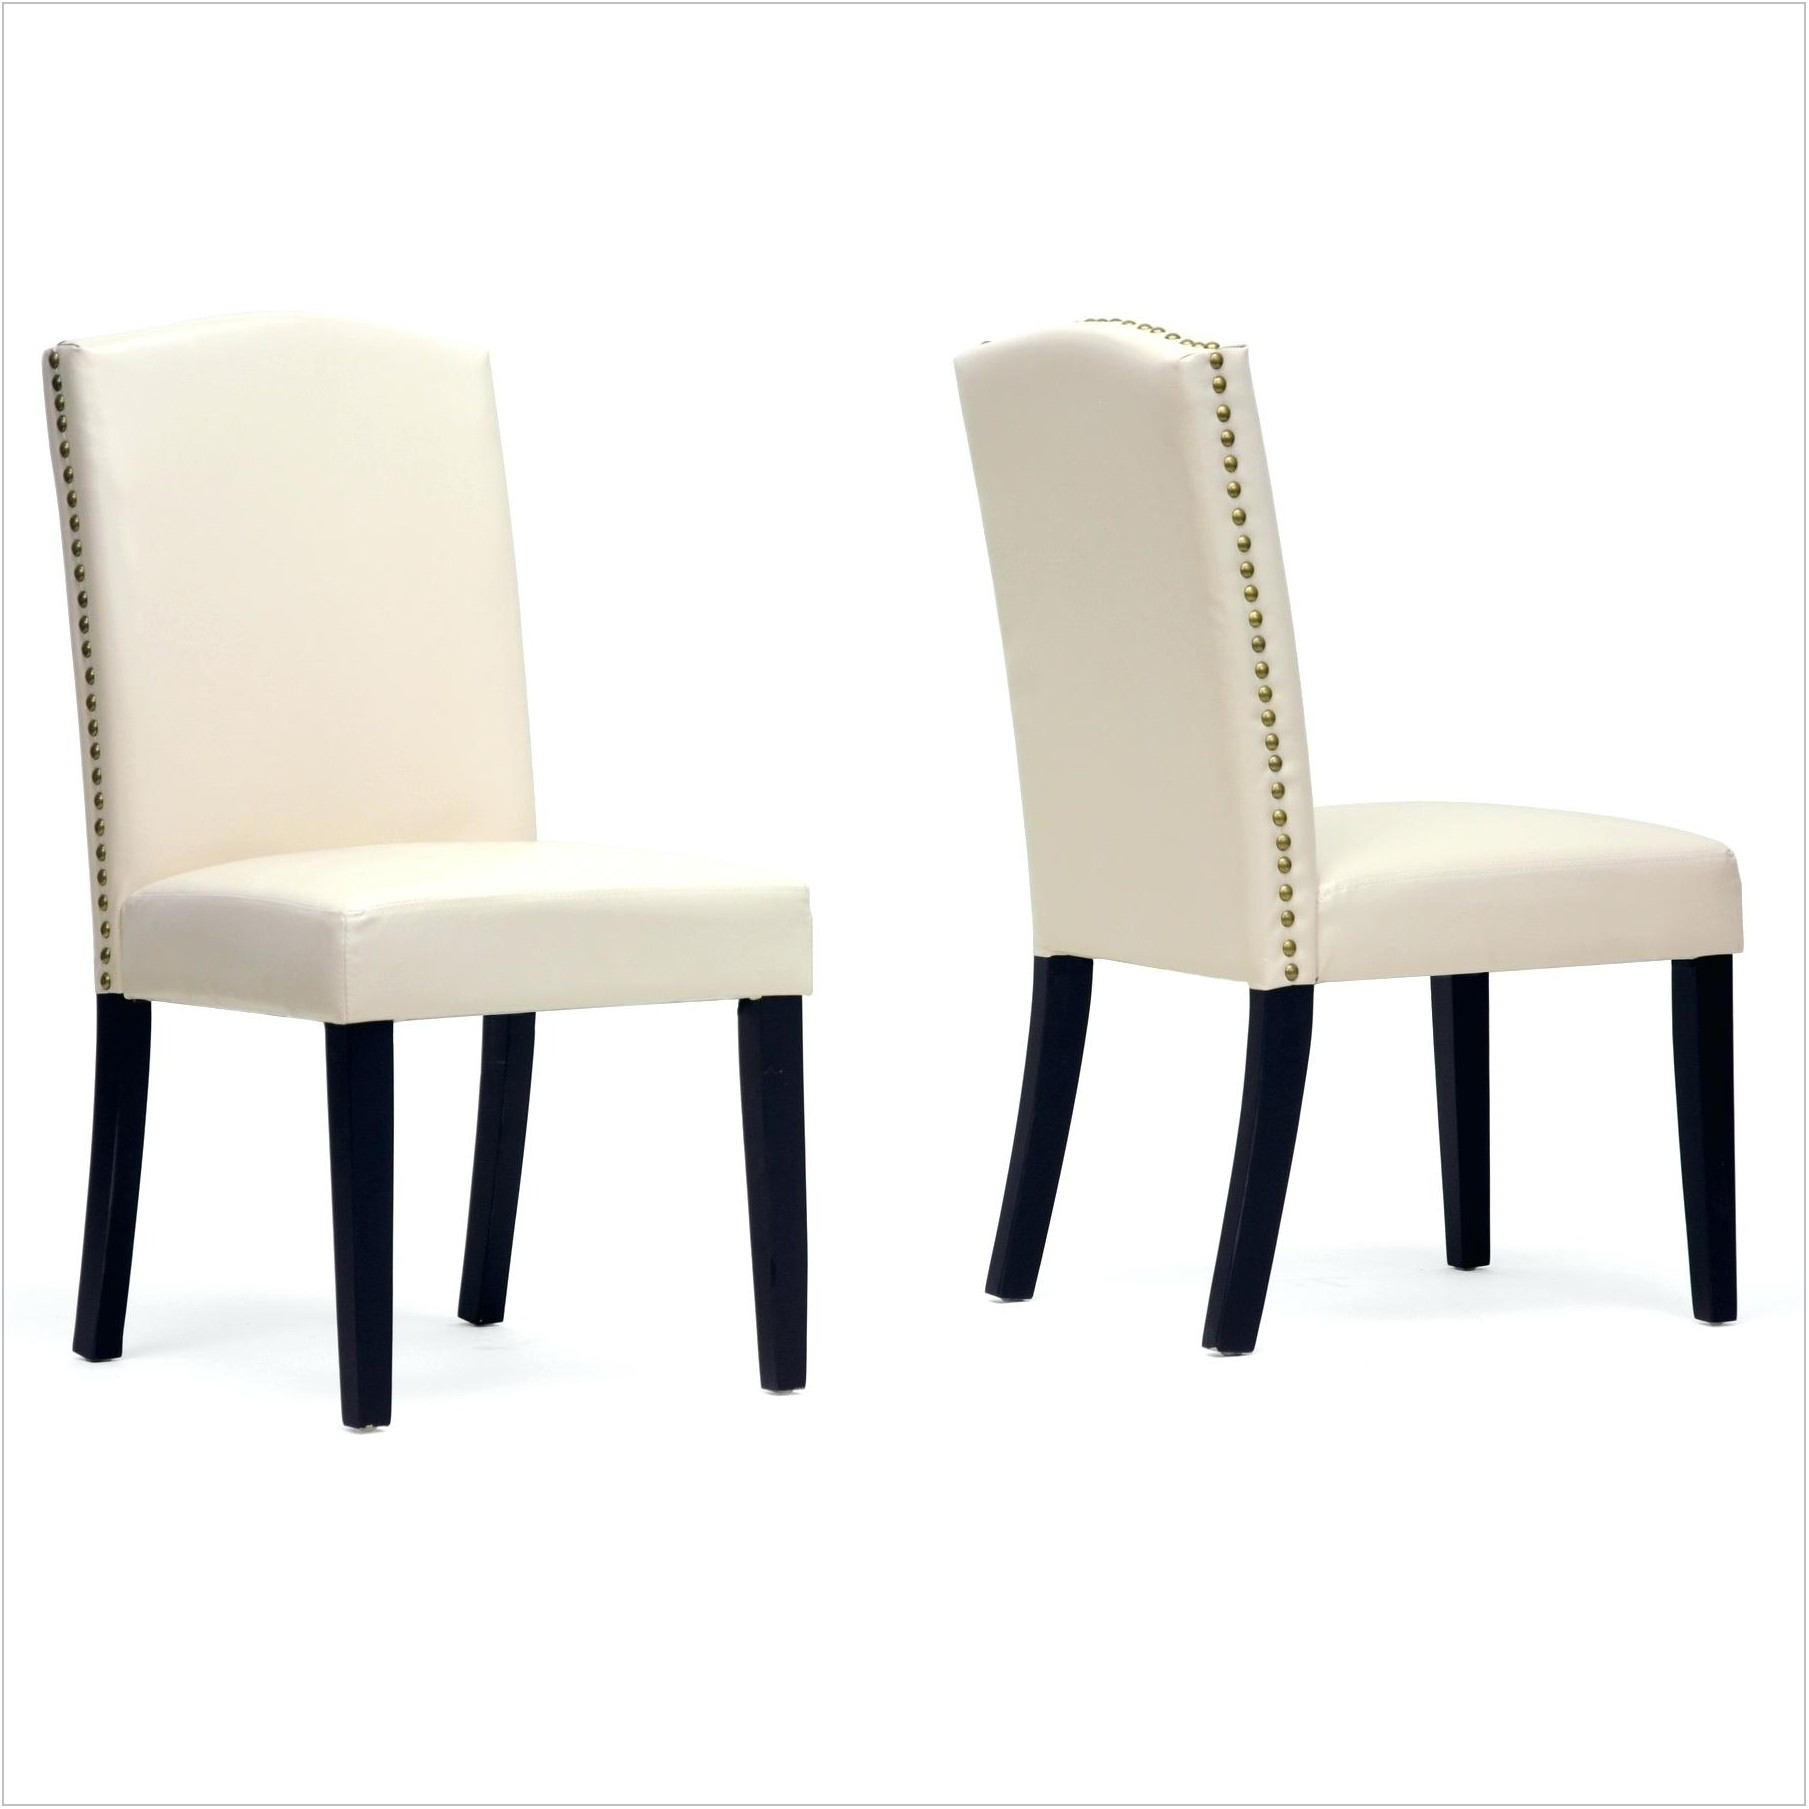 Beige Upholstered Dining Room Chairs